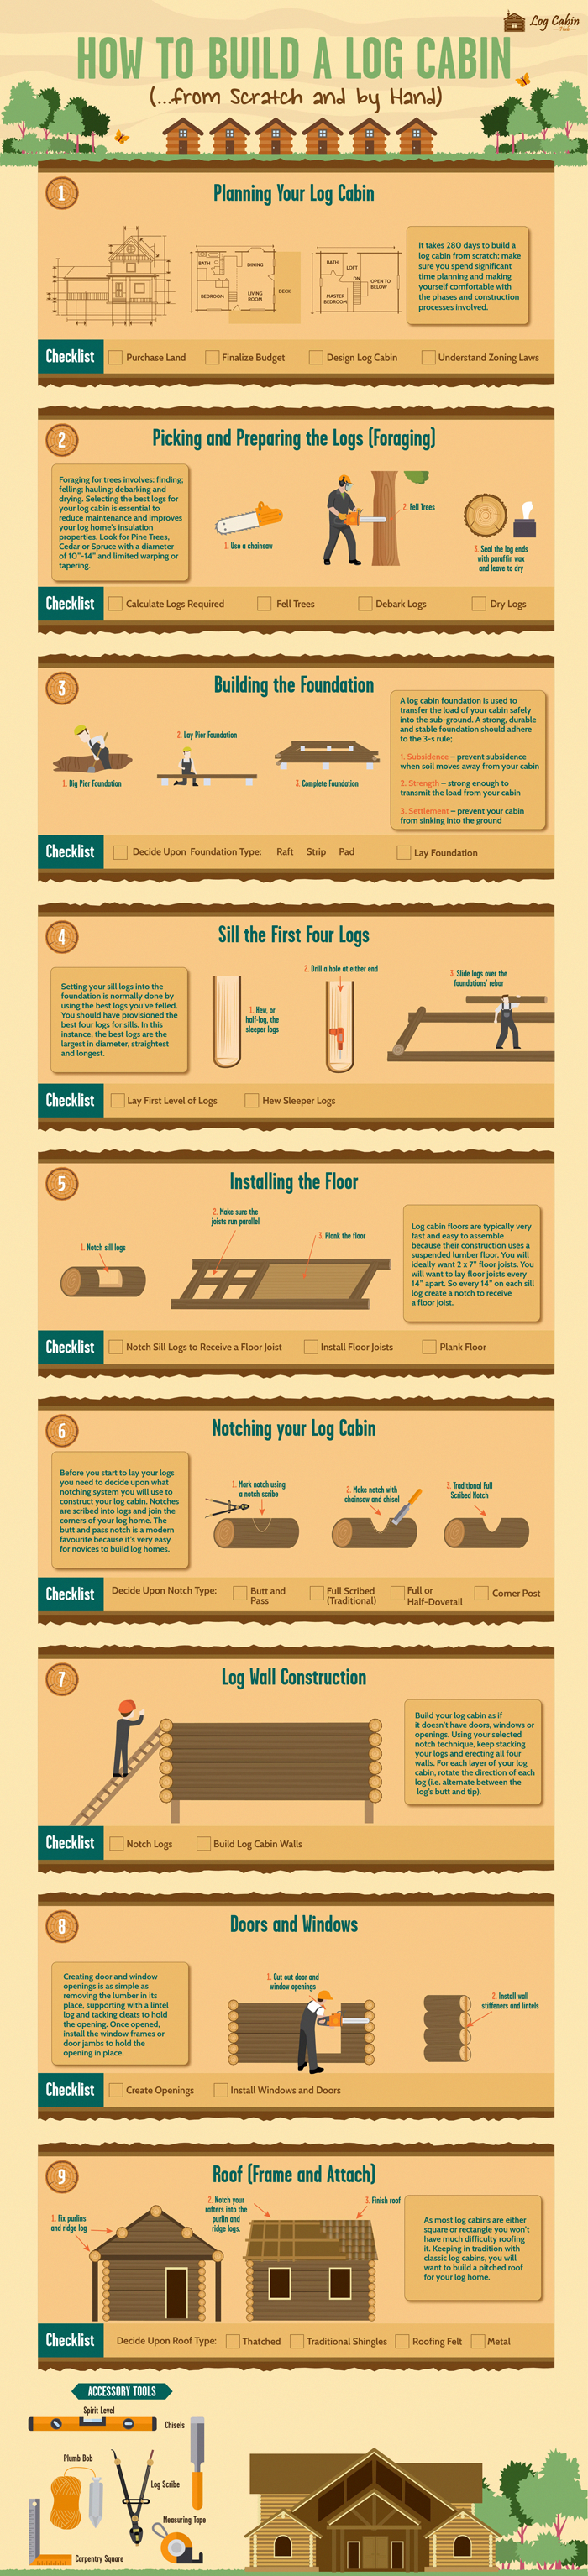 How To Build A Log Cabin Infographic Woodworkinginfographic How To Build A Log Cabin Off Grid Cabin Log Cabin